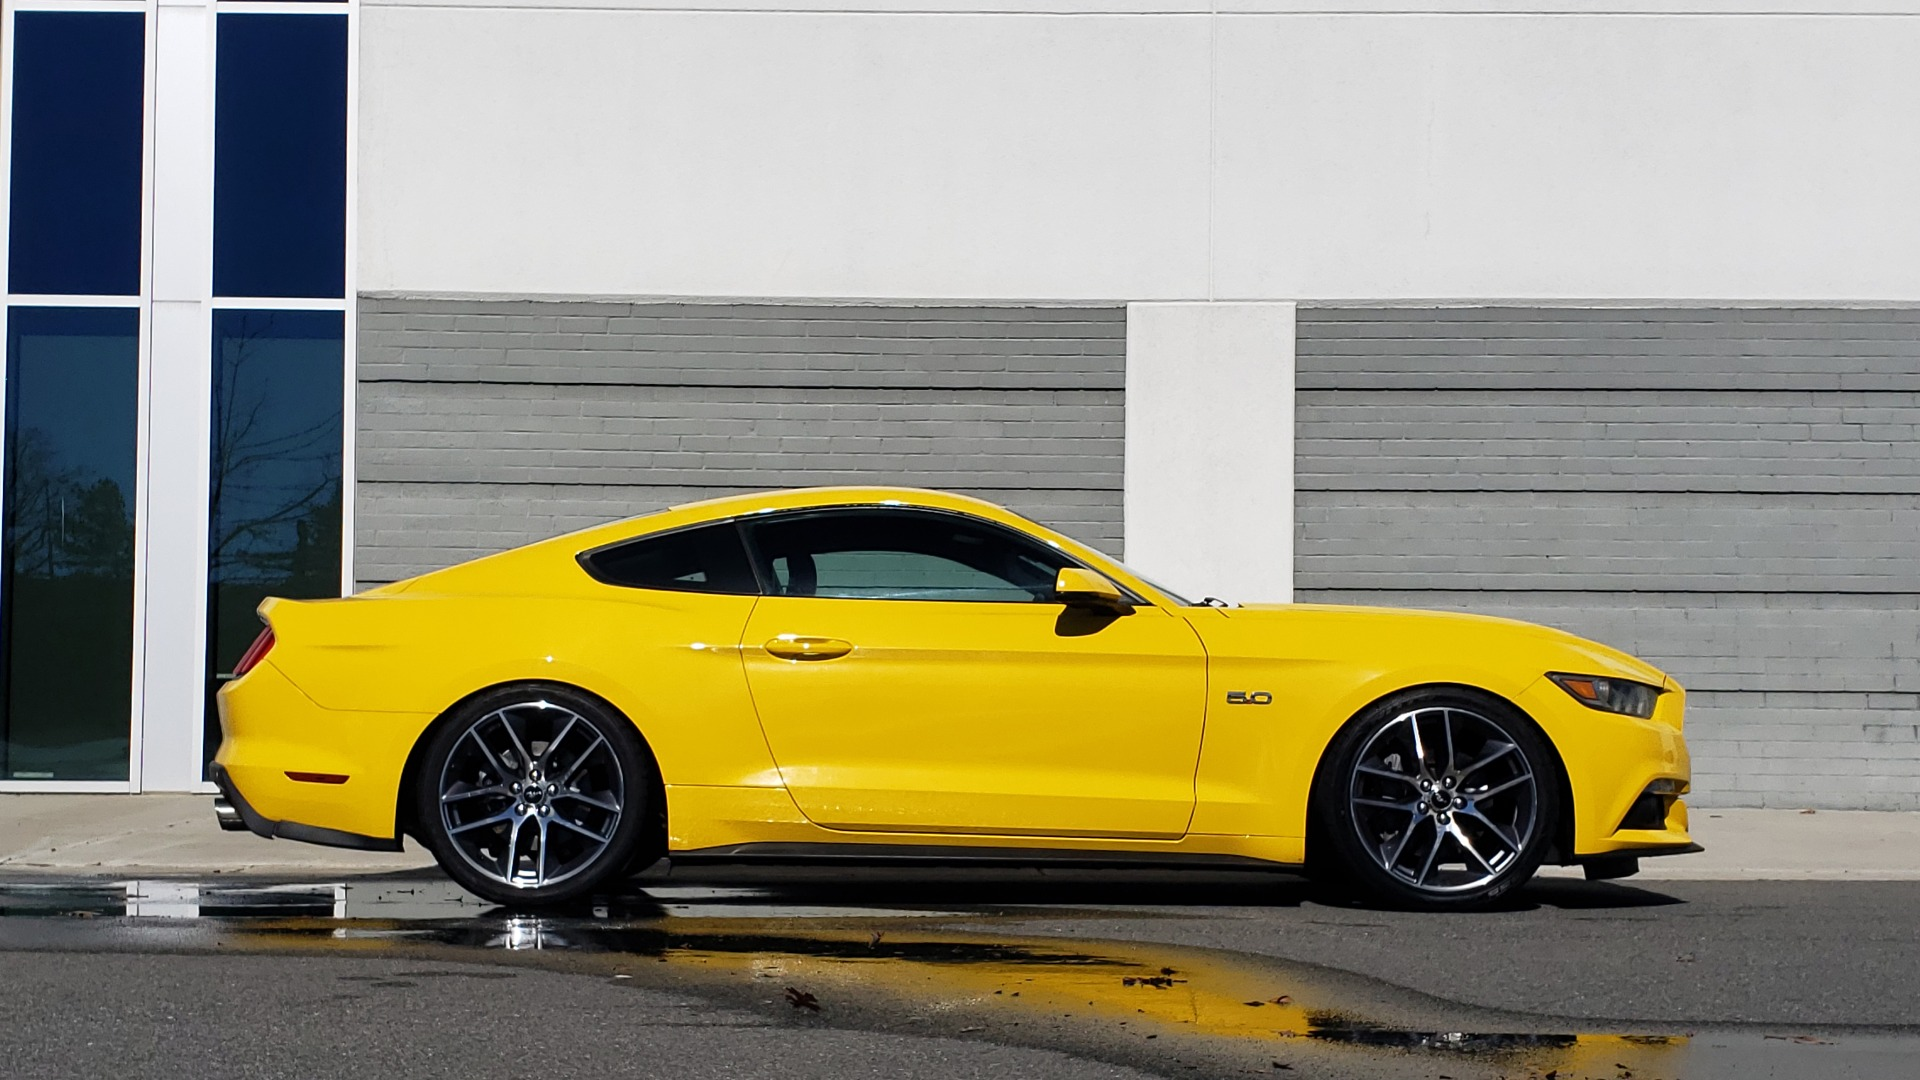 Used 2015 Ford MUSTANG GT 5.0L COUPE PREMIUM / 6-SPD MAN / SHAKER AUDIO / NAV for sale Sold at Formula Imports in Charlotte NC 28227 8